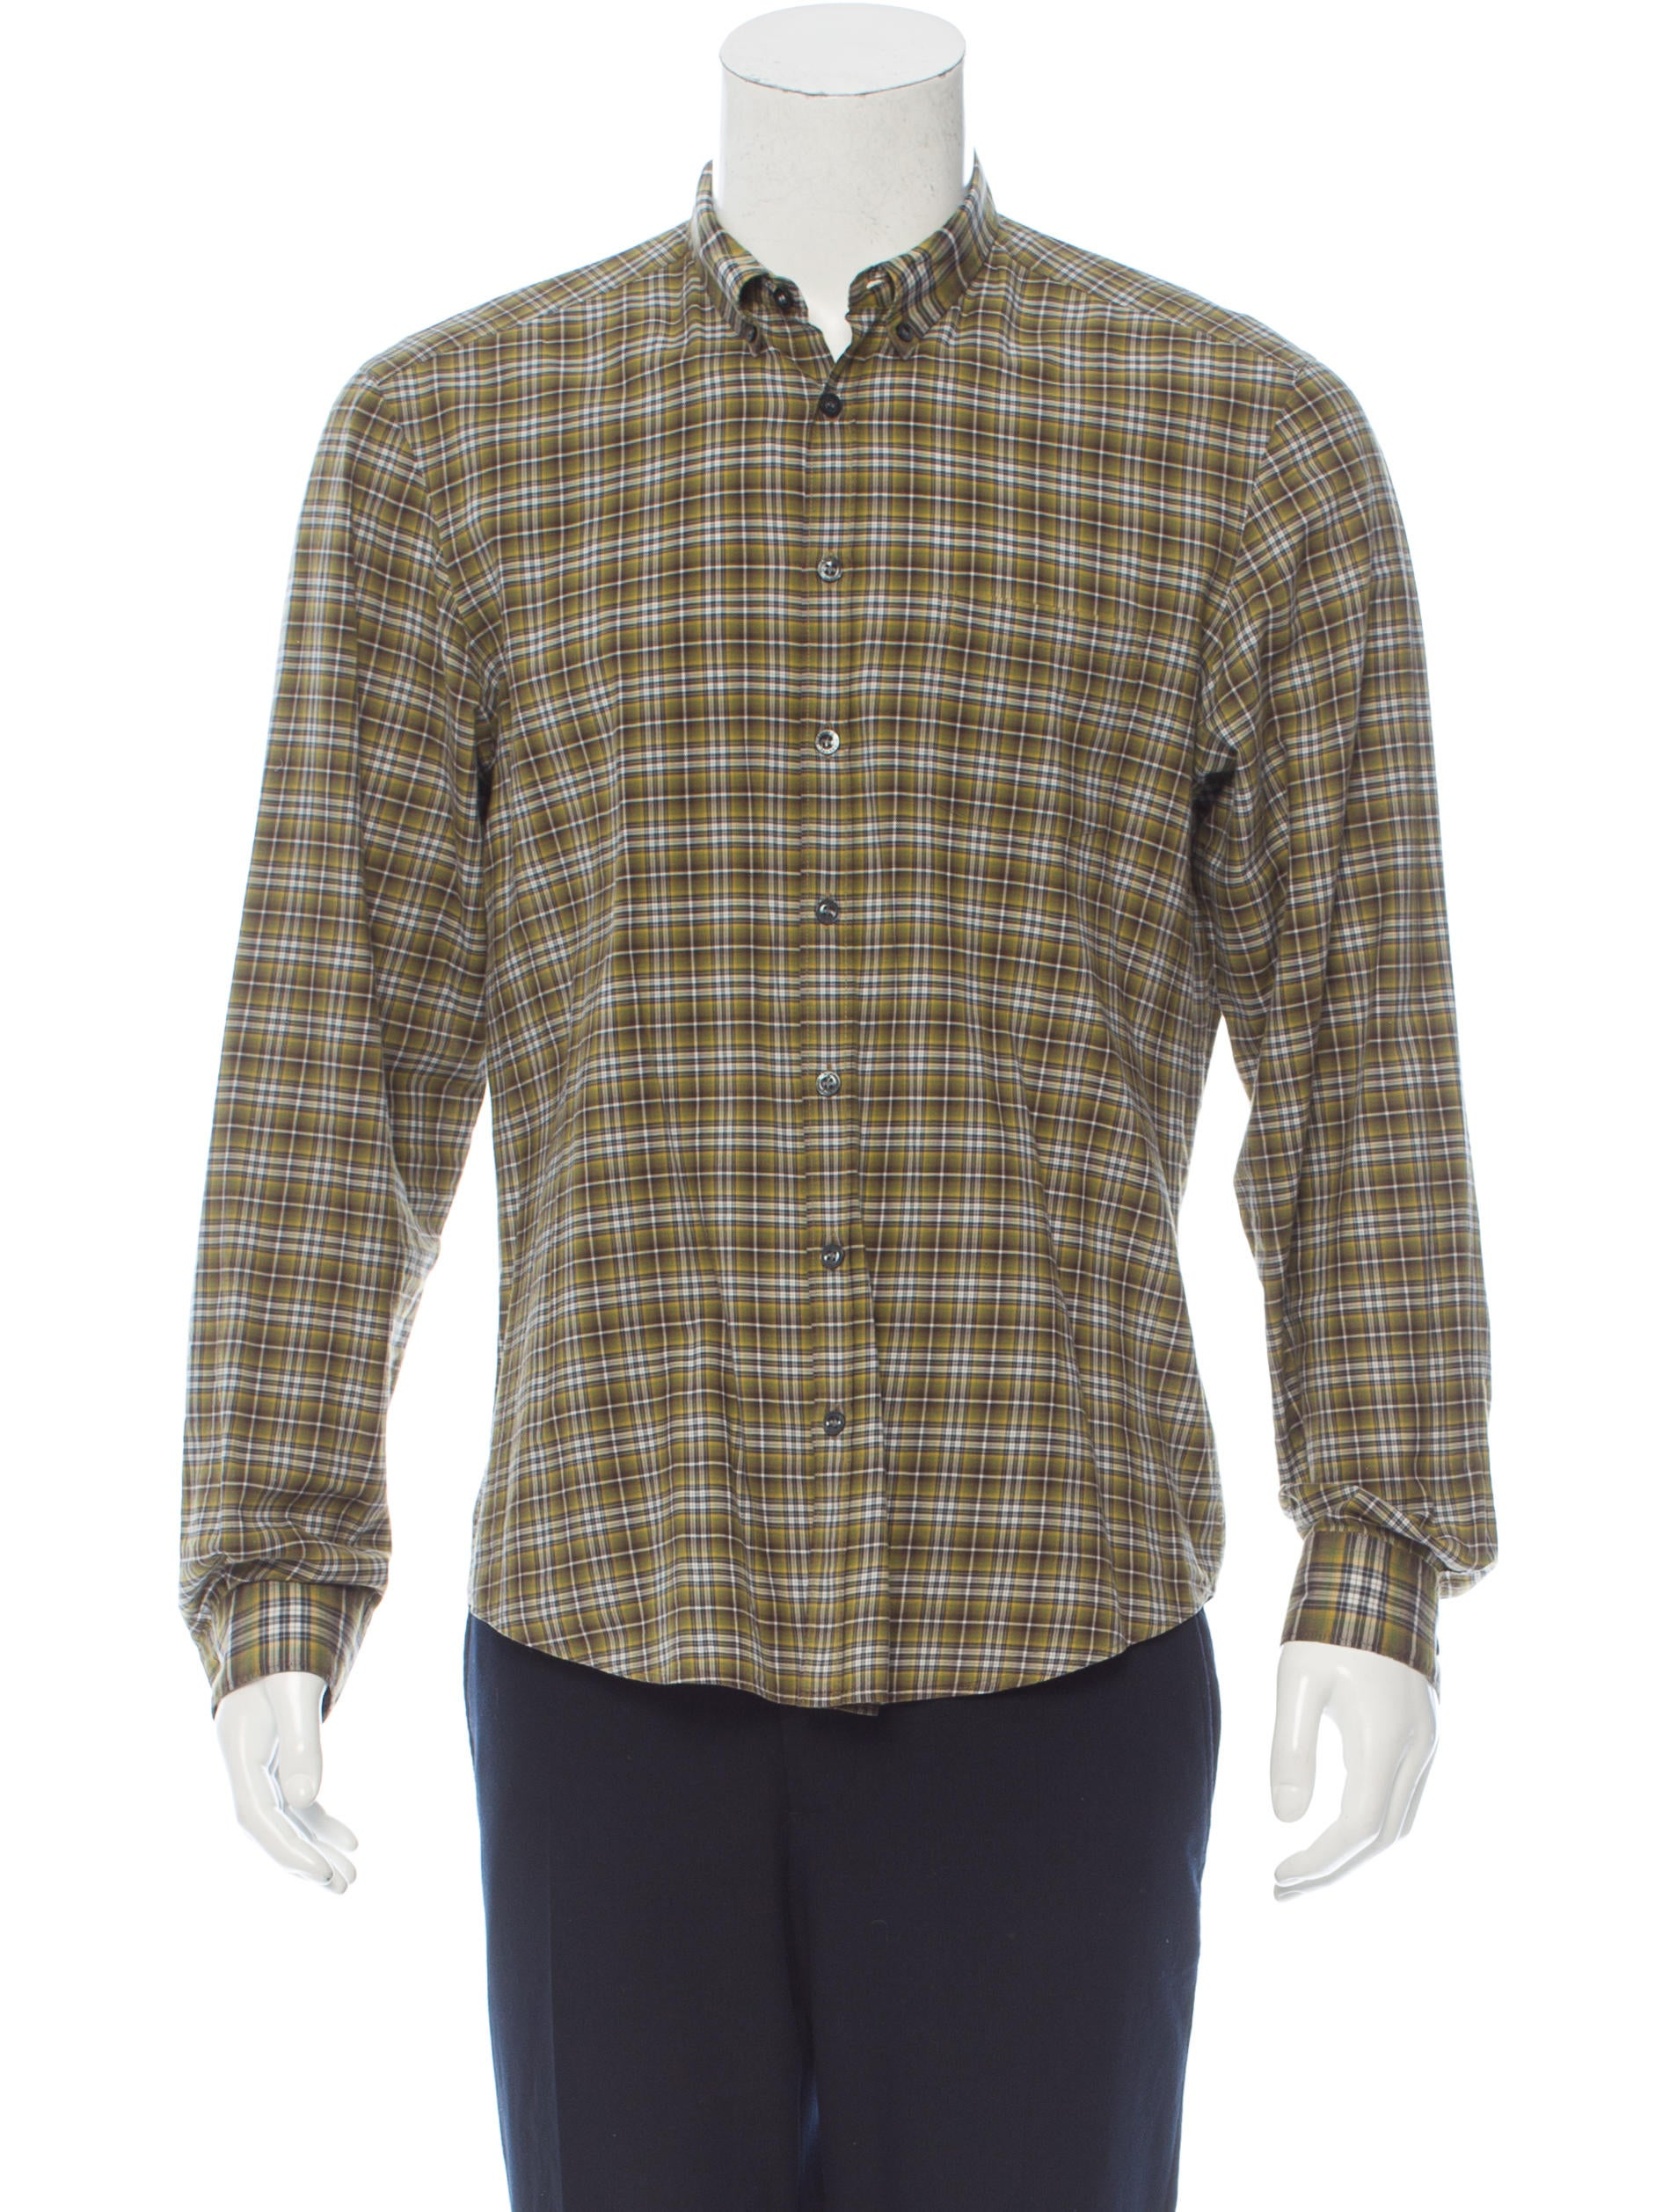 Burberry brit plaid button up shirt clothing bbr27817 for Burberry brit checked shirt